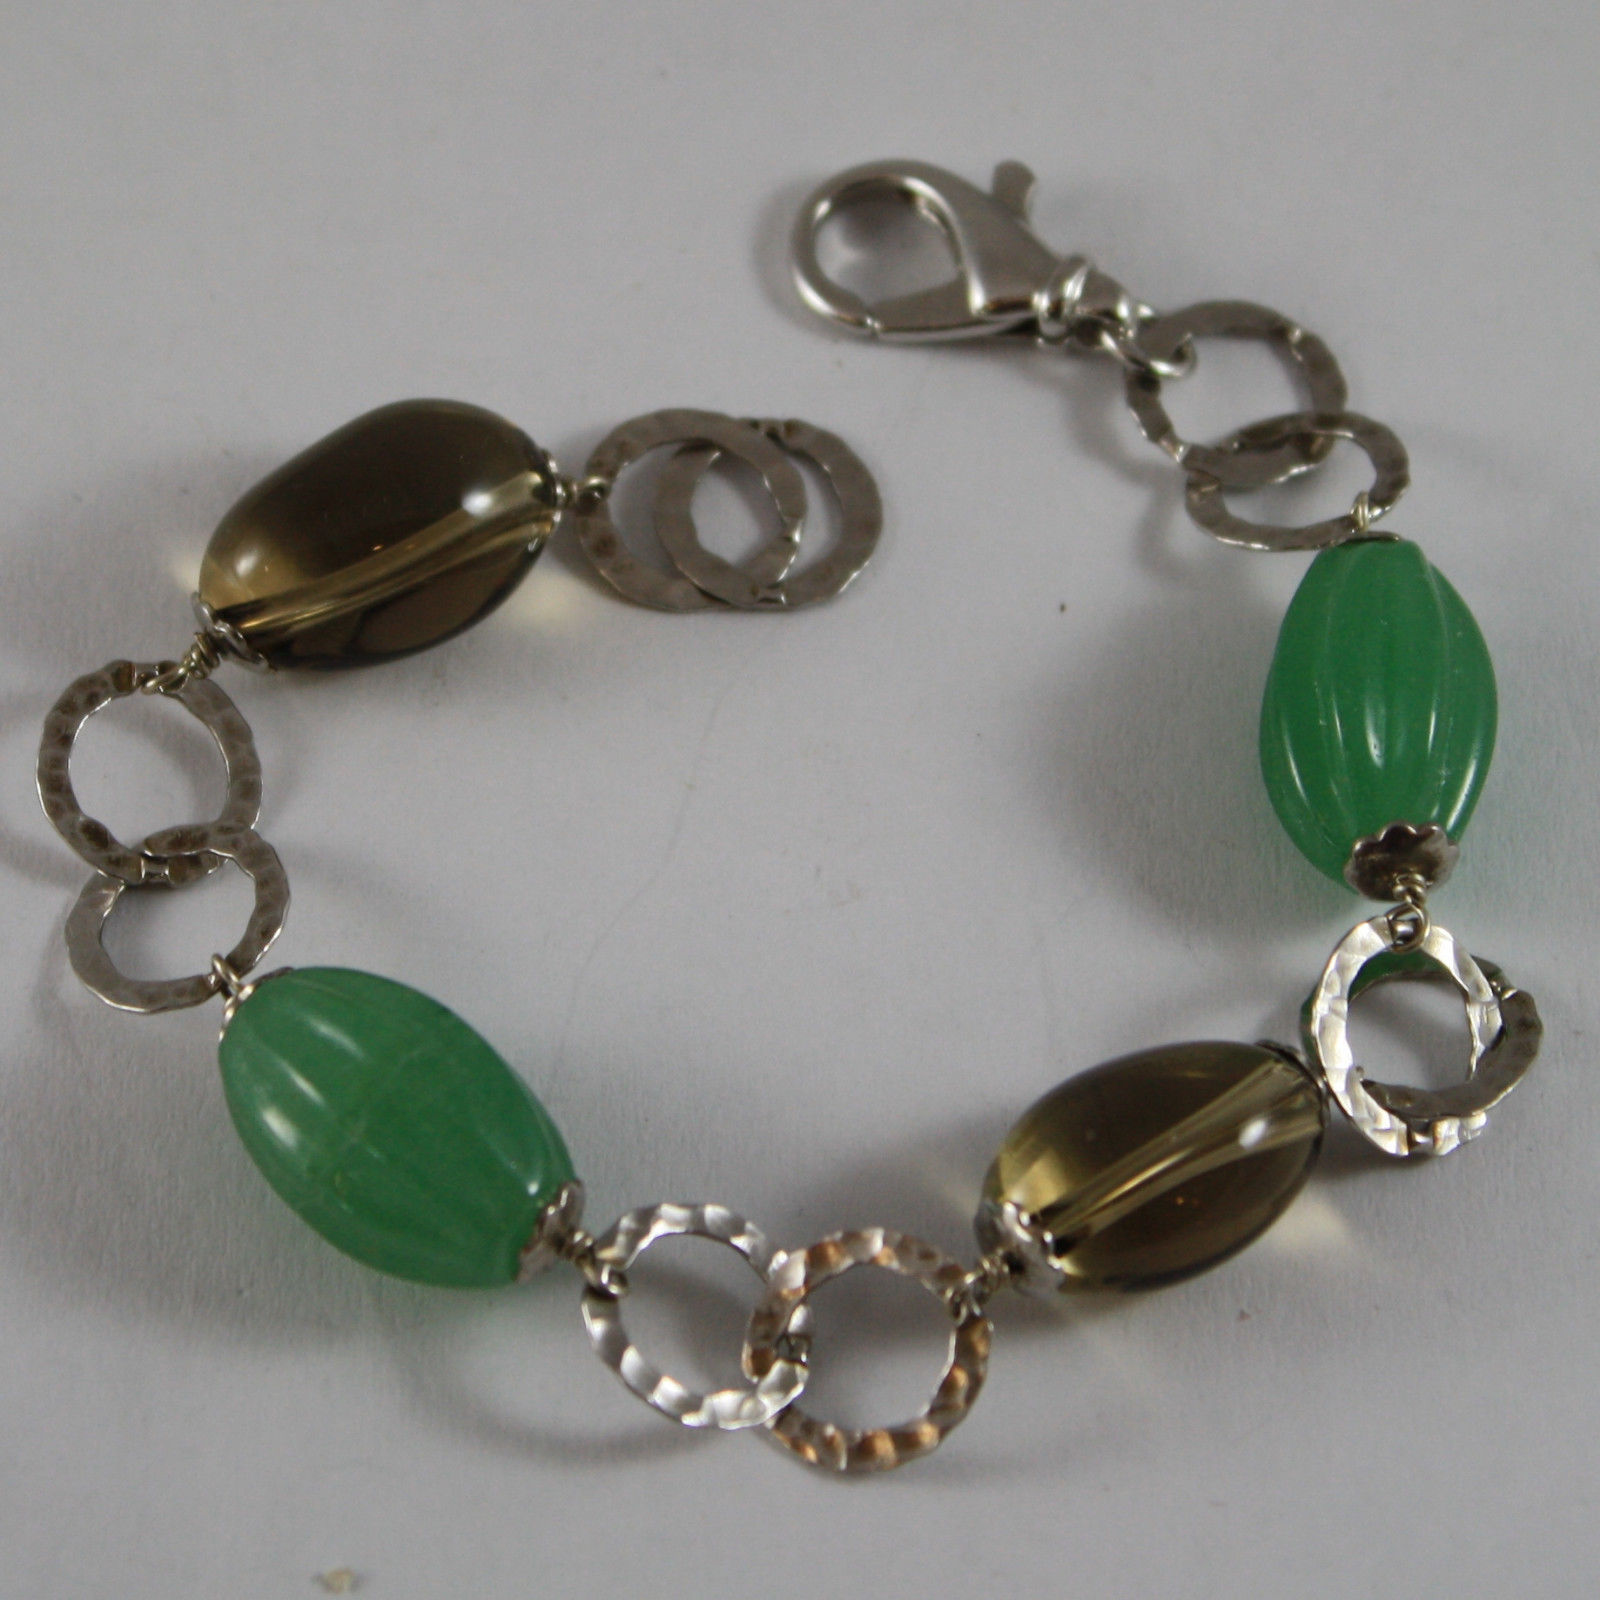 .925 RHODIUM SILVER  BRACELET WITH GREEN AGATE AND QUARTZ